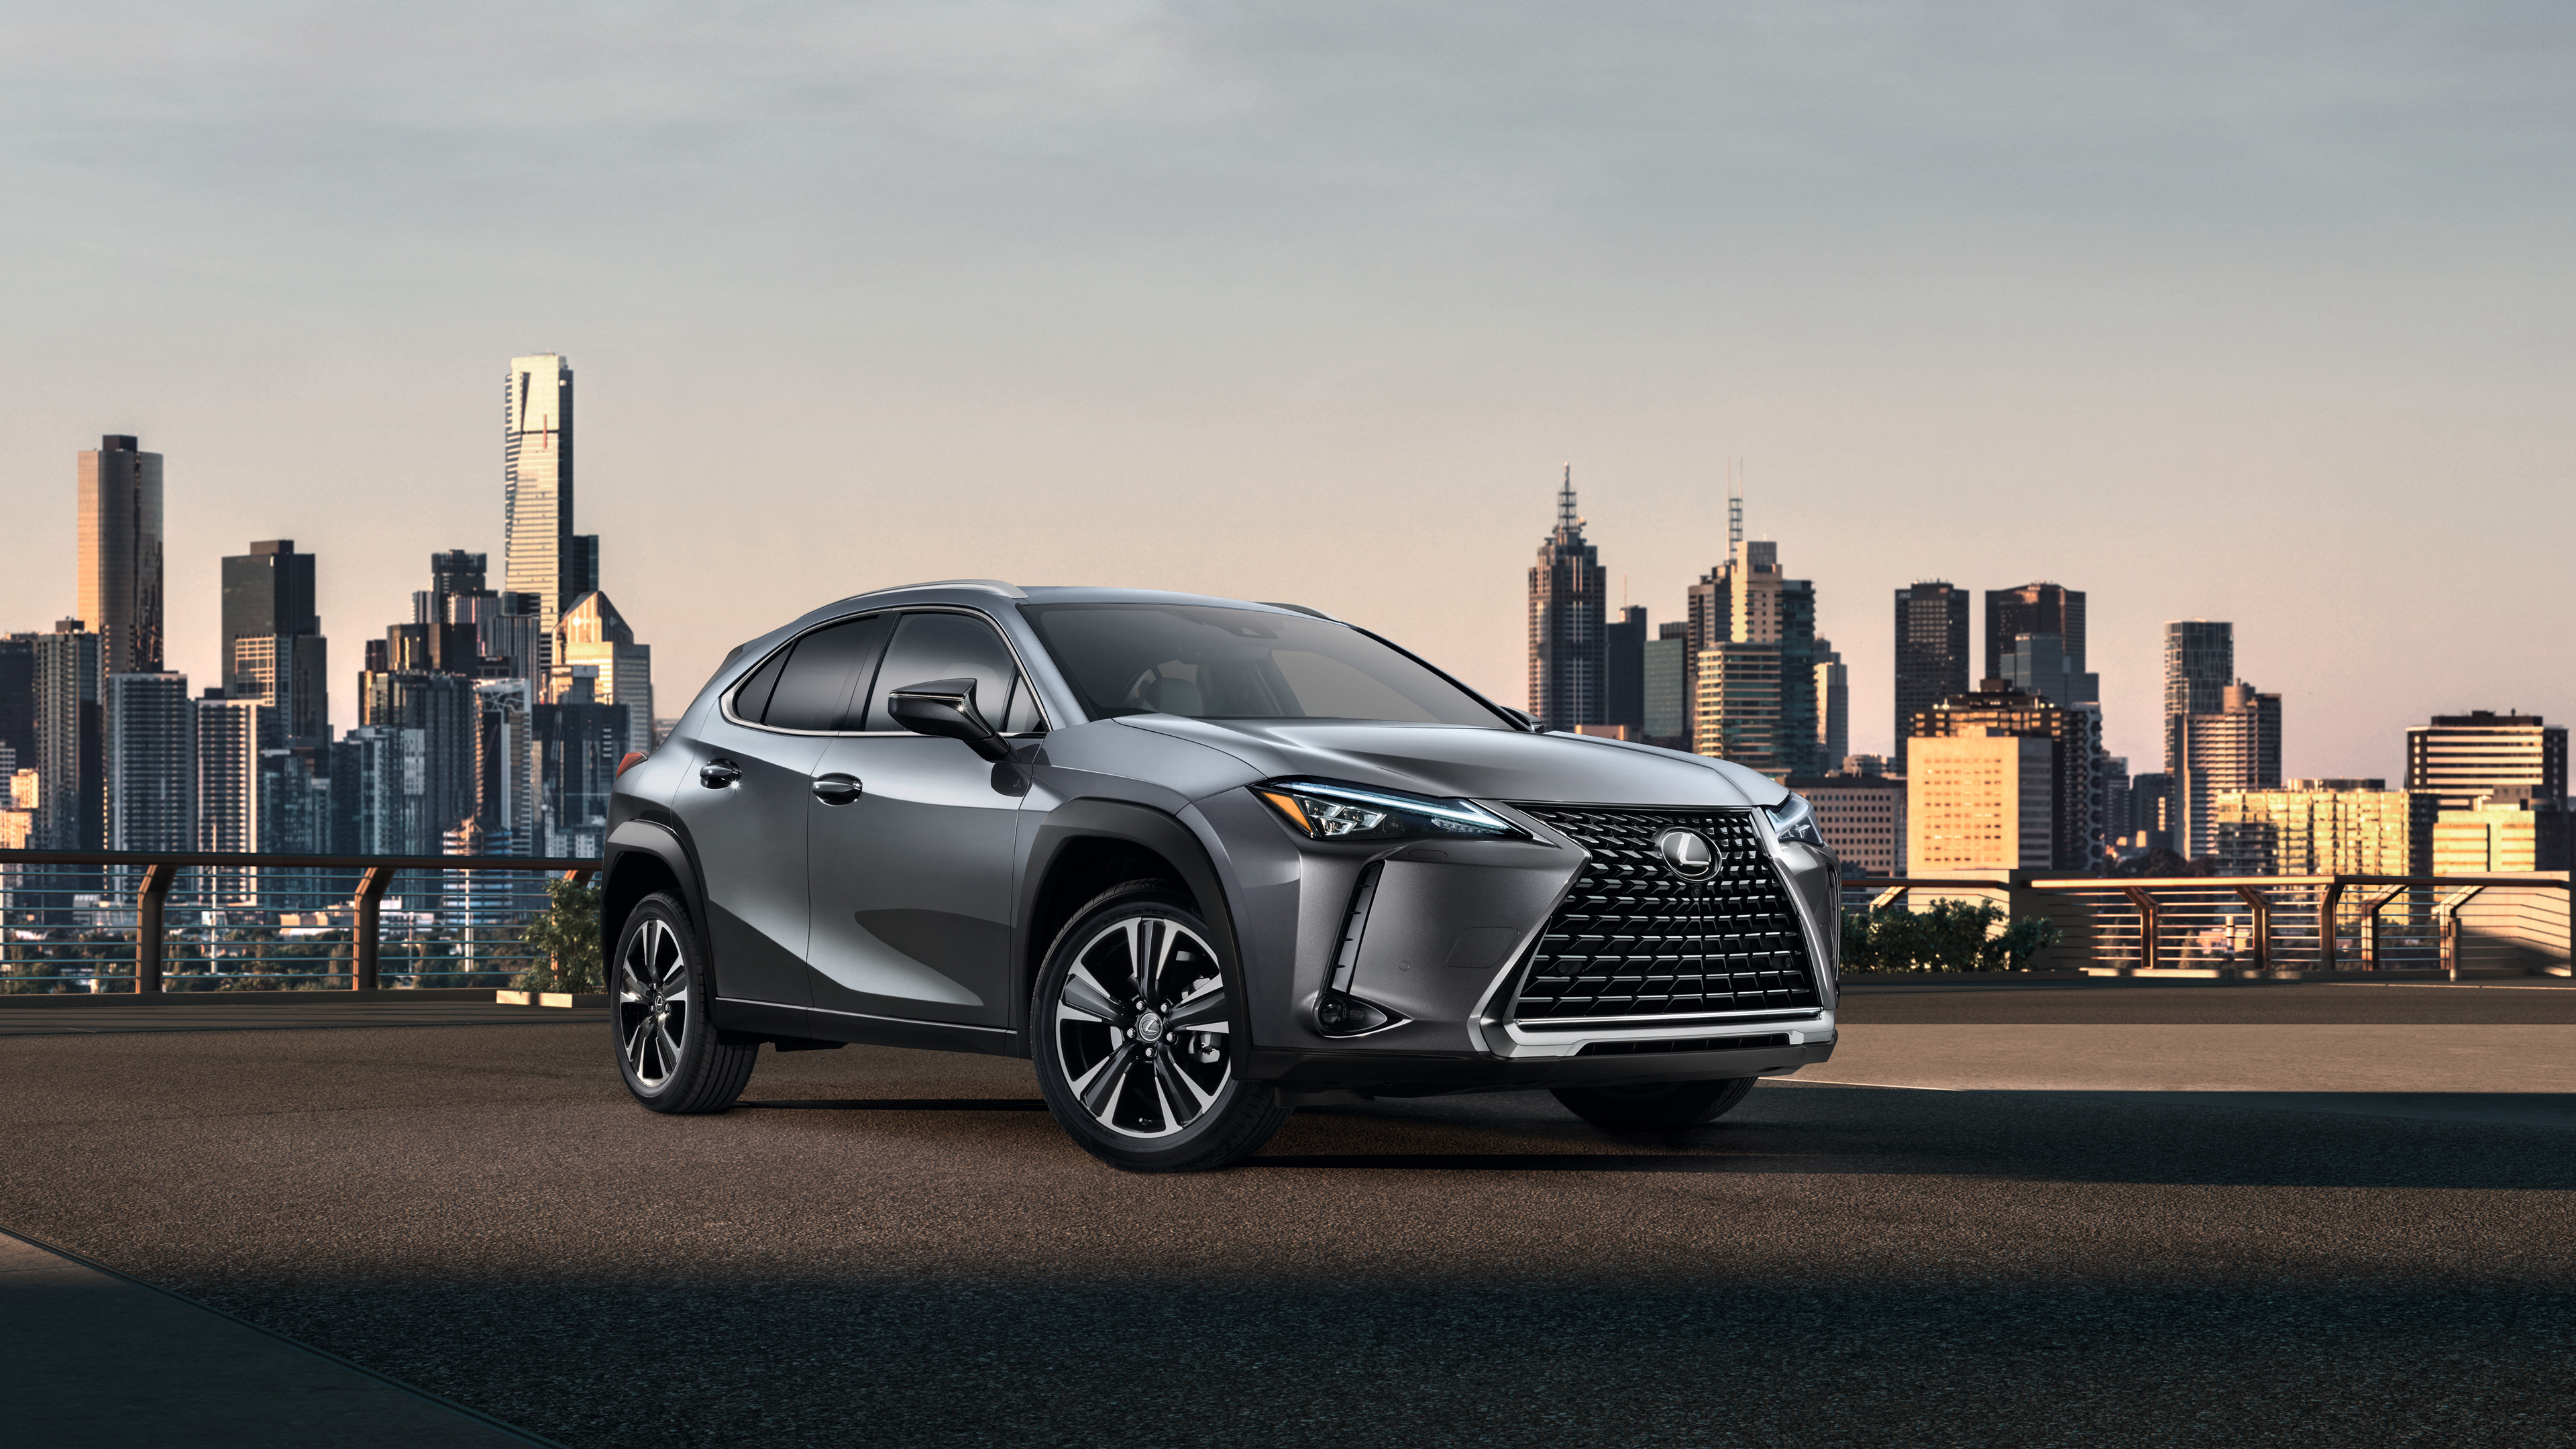 2018 Lexus UX 200 2 Wallpaper | HD Car Wallpapers | ID #9812